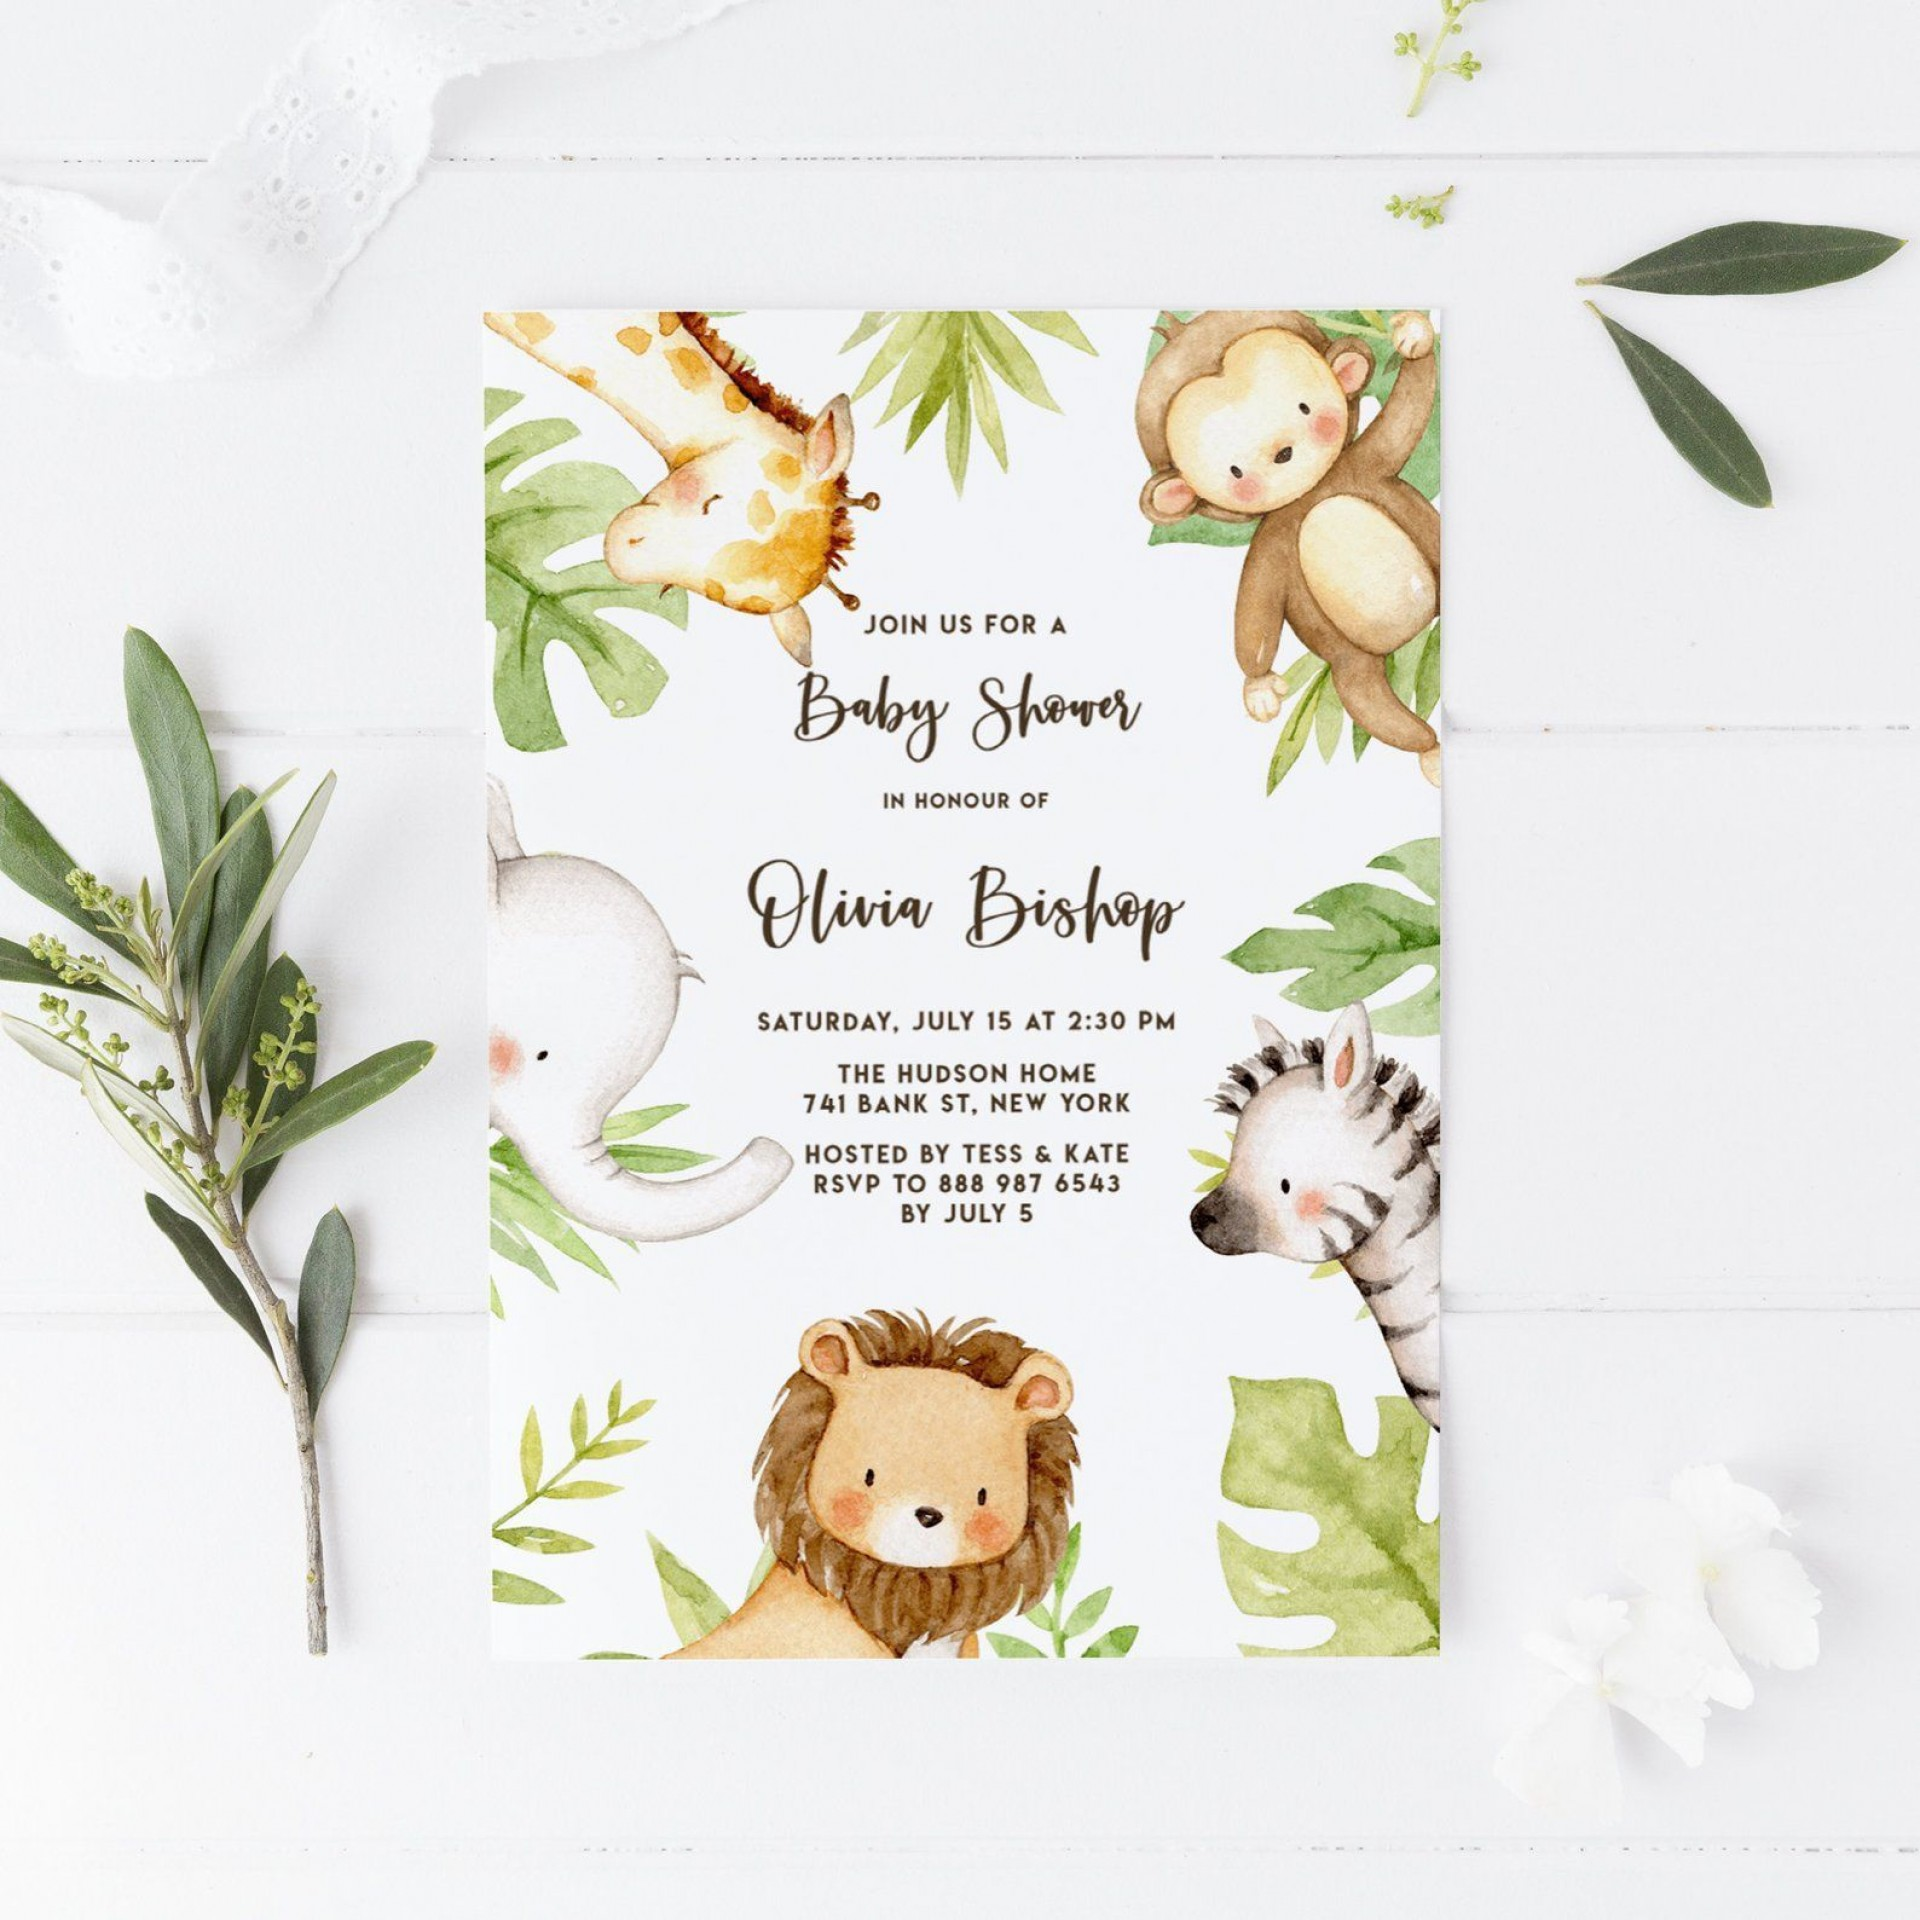 000 Stunning Diy Baby Shower Invitation Template Example  Templates Diaper Free1920